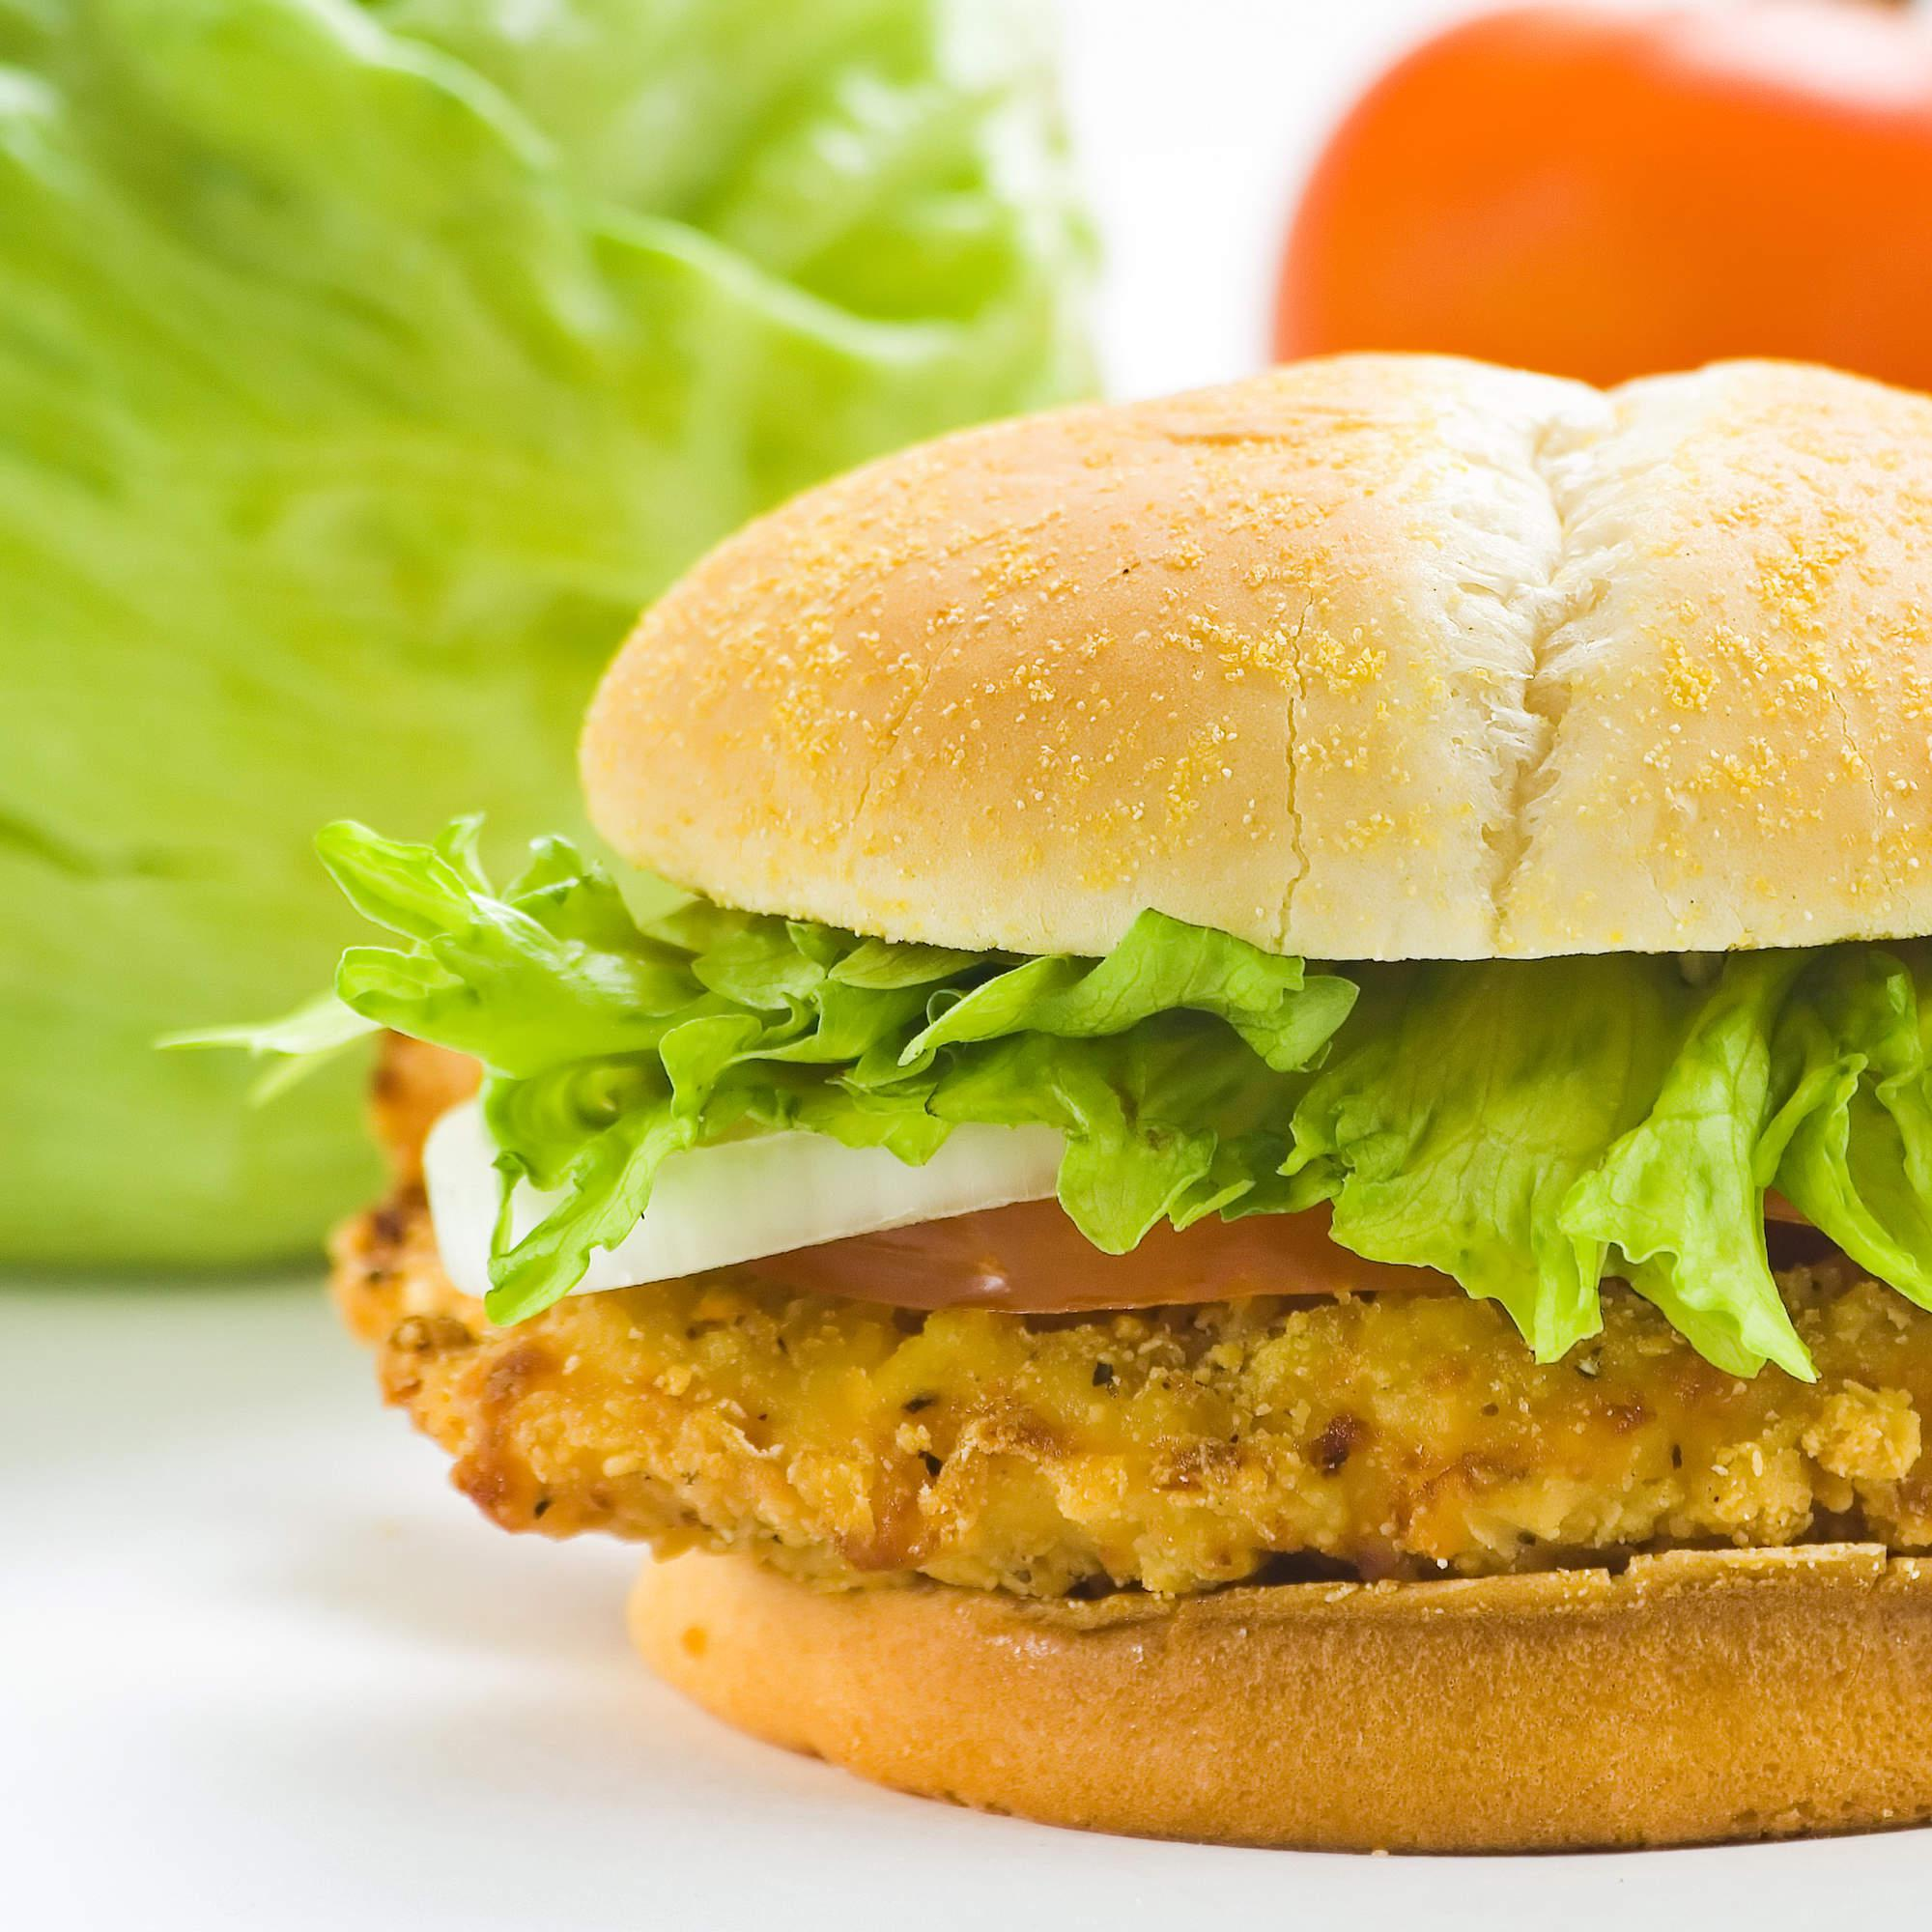 What Is The Healthiest Fast Food Sandwich